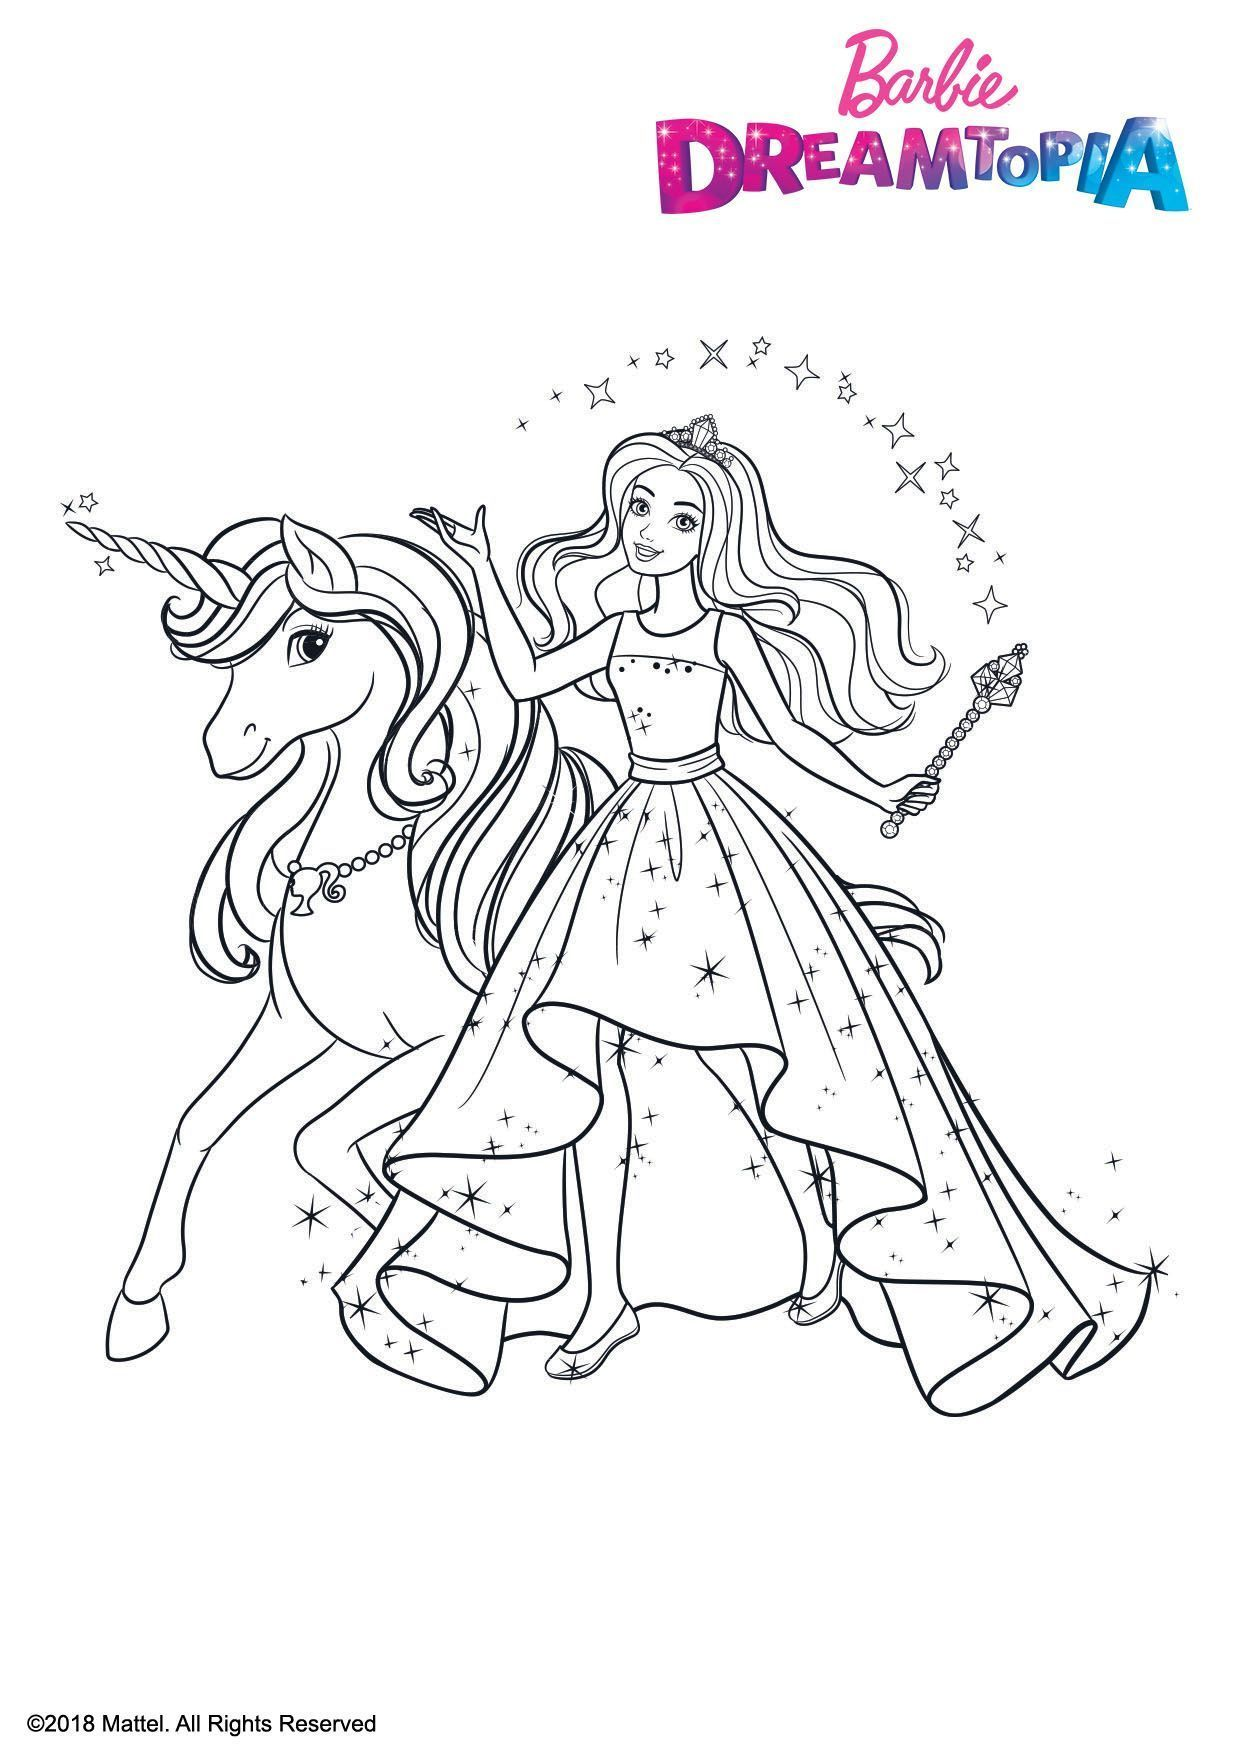 Pin By Marina On Barbie Coloring Book Unicorn Coloring Pages Barbie Coloring Pages Mermaid Coloring Pages